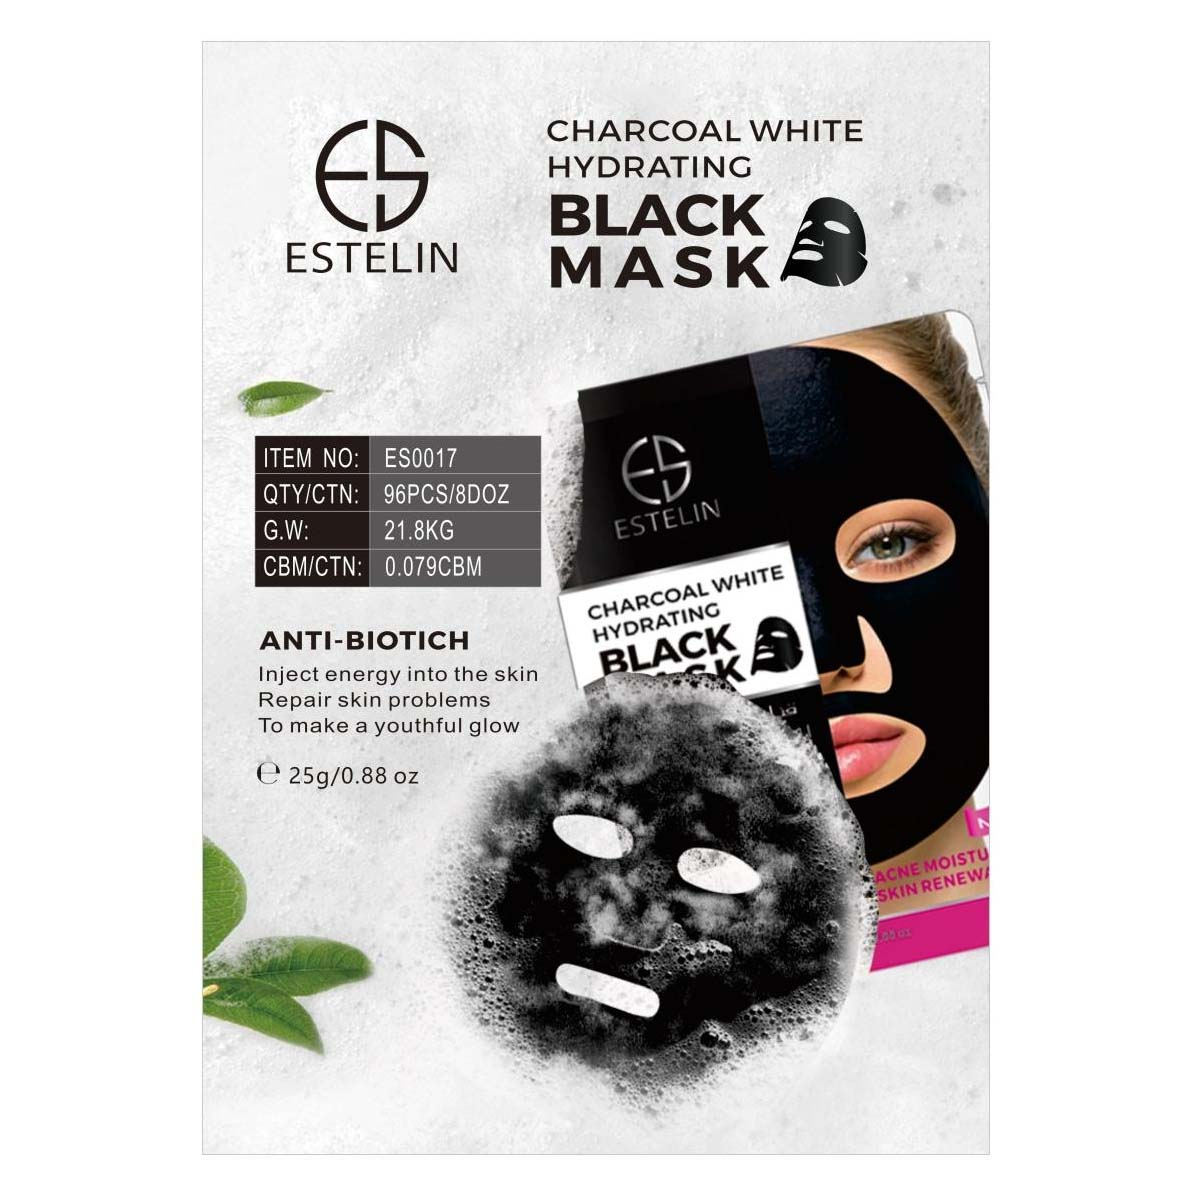 Estelin Charcoal White Hydrating Black Acne Moisturizing Skin Renewal –  Limitlesswow